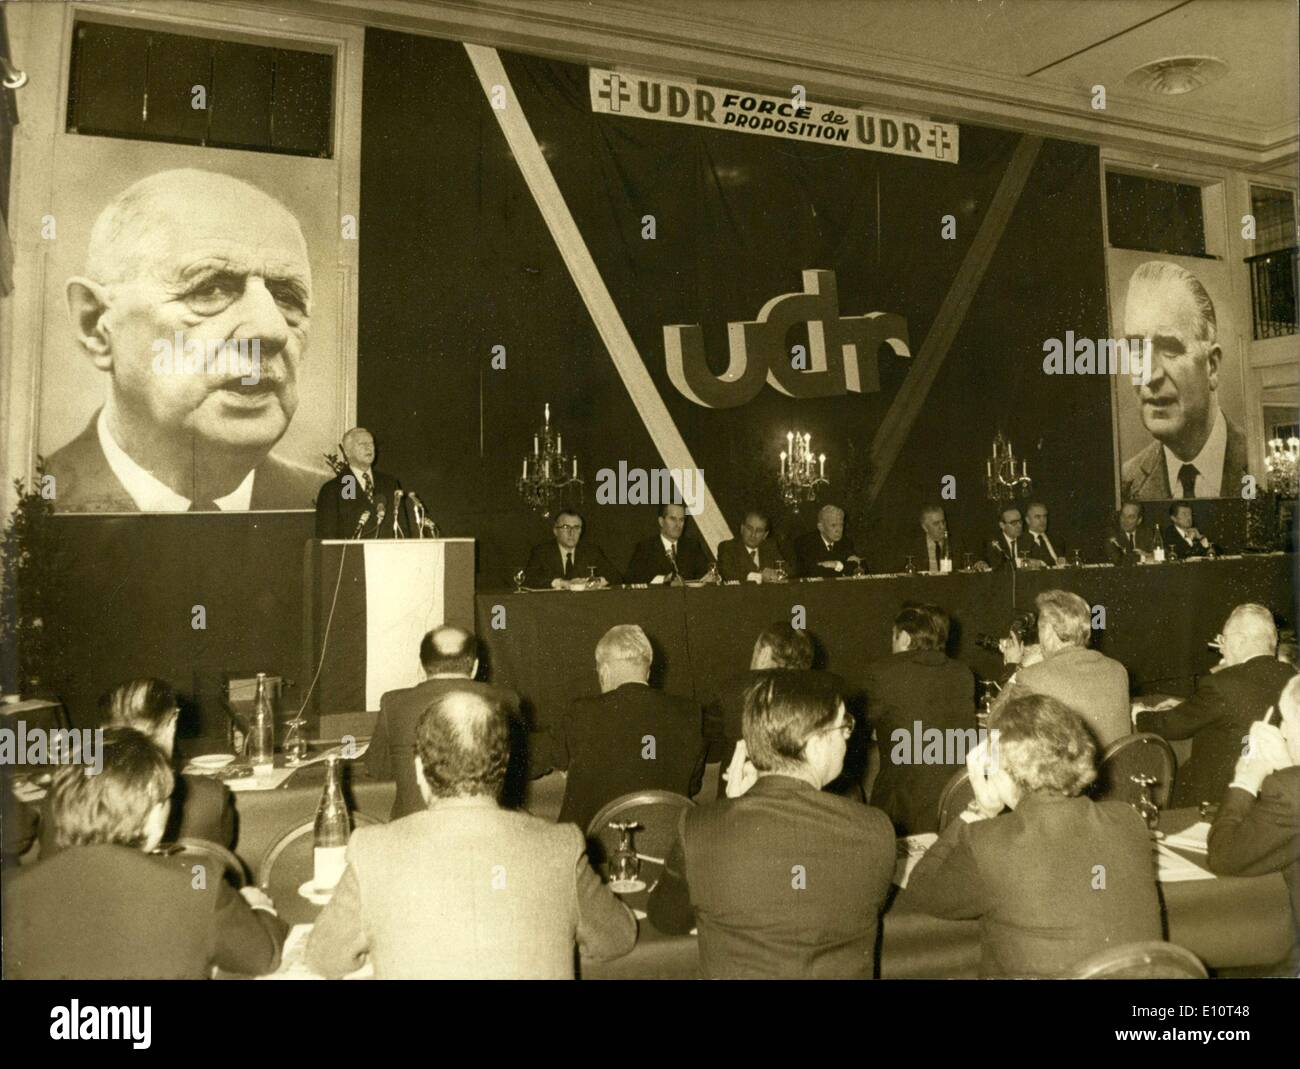 Jan. 19, 1974 - The central committee of the Union of Democrats for the Republic (UDR) met this morning at the Intercontinental - Stock Image